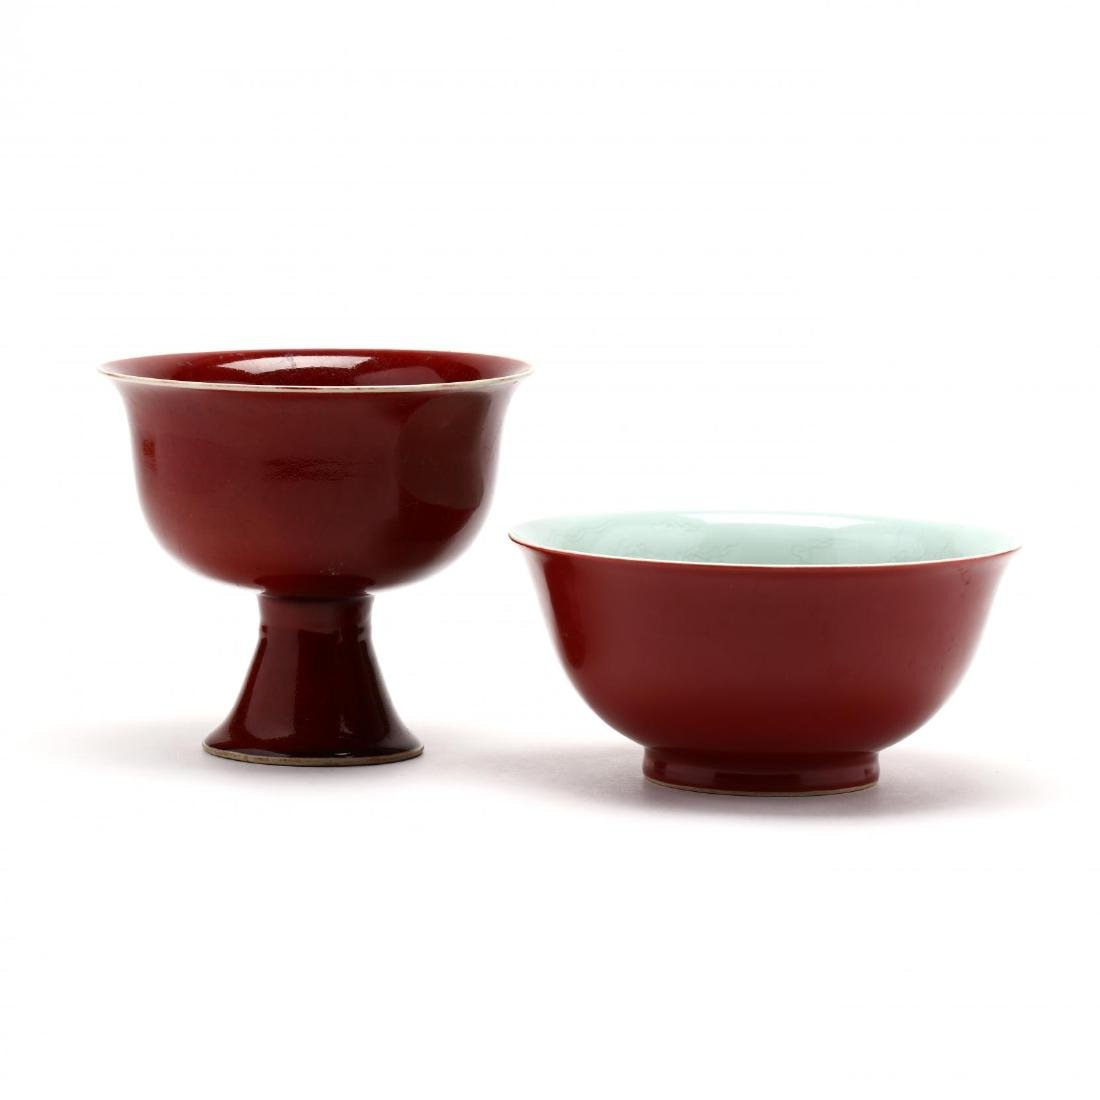 A Large Chinese Persimmon Stem Cup and Bowl